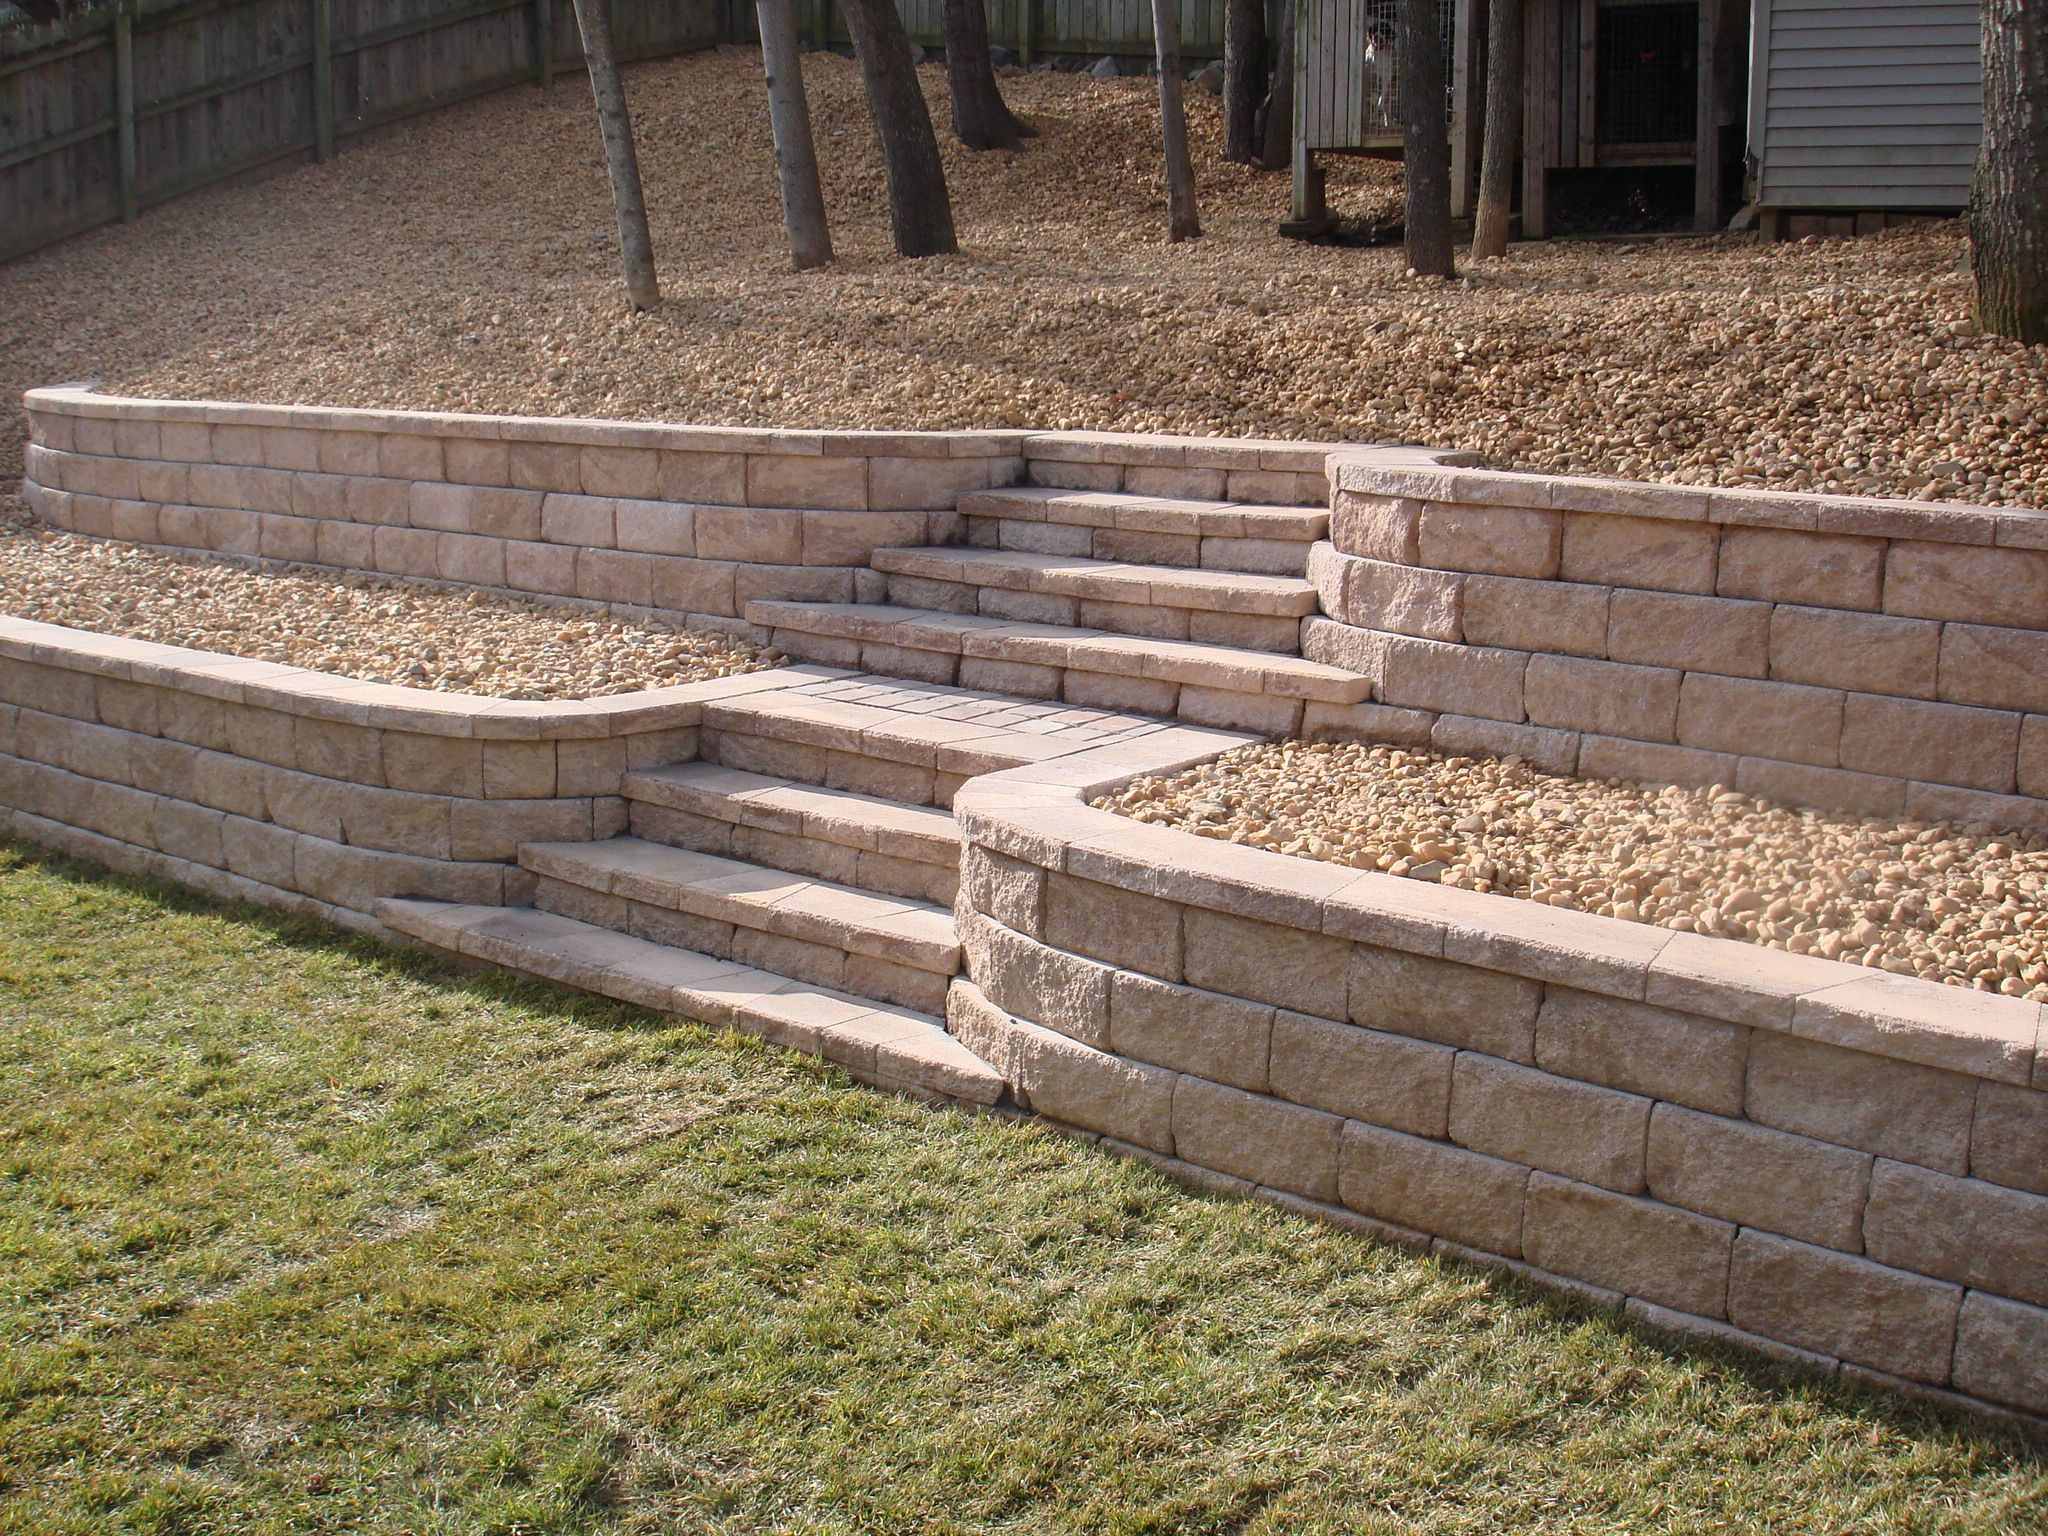 Retaining Wall Blocks Design retaining wall blocks design retaining wall pattern play Retaining Wall Gardens